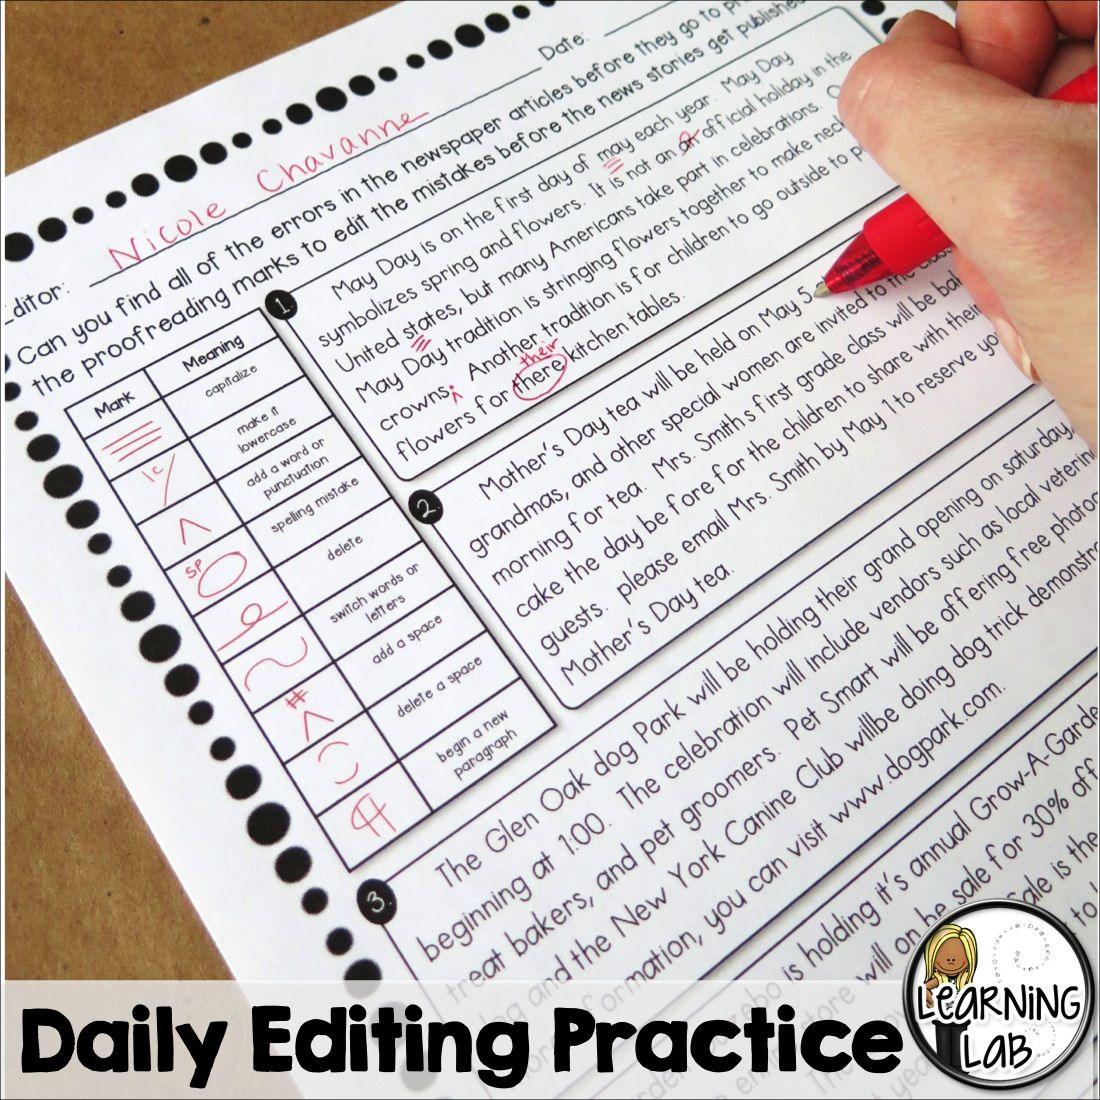 Daily Editing Practice To Help Improve Writing